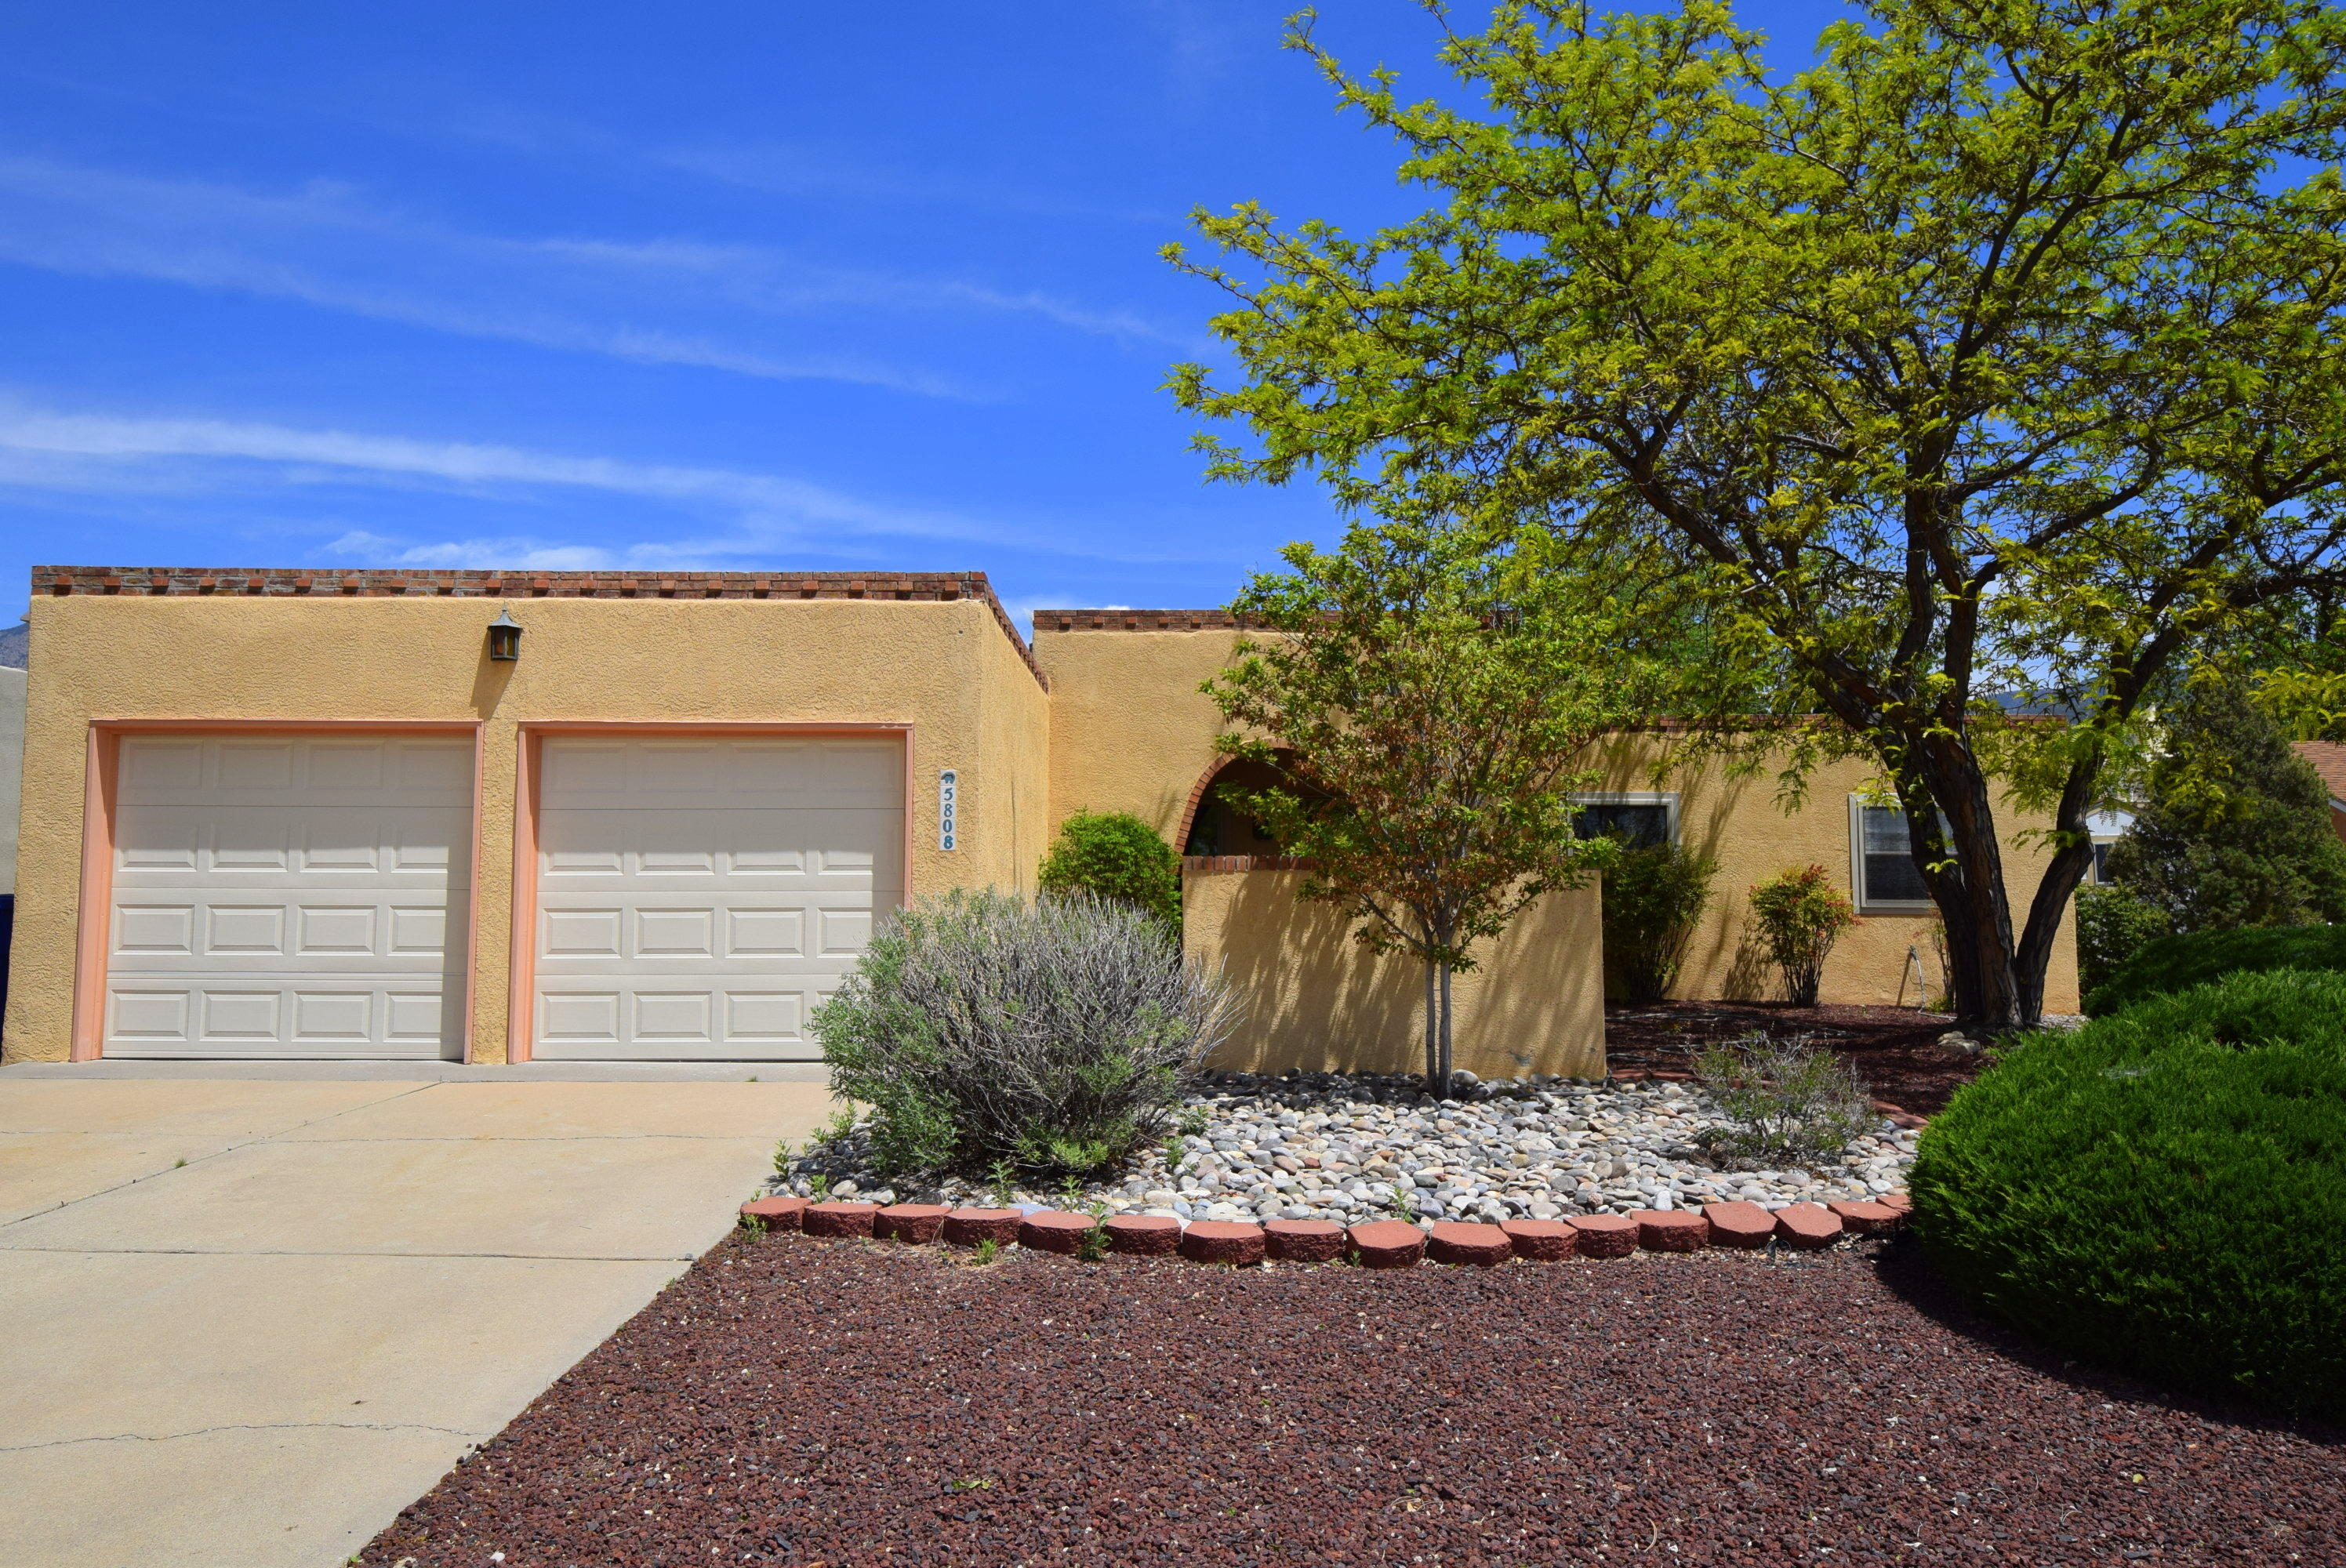 5808 GREENLY Avenue NE, Albuquerque, NM 87111 - Albuquerque, NM real estate listing